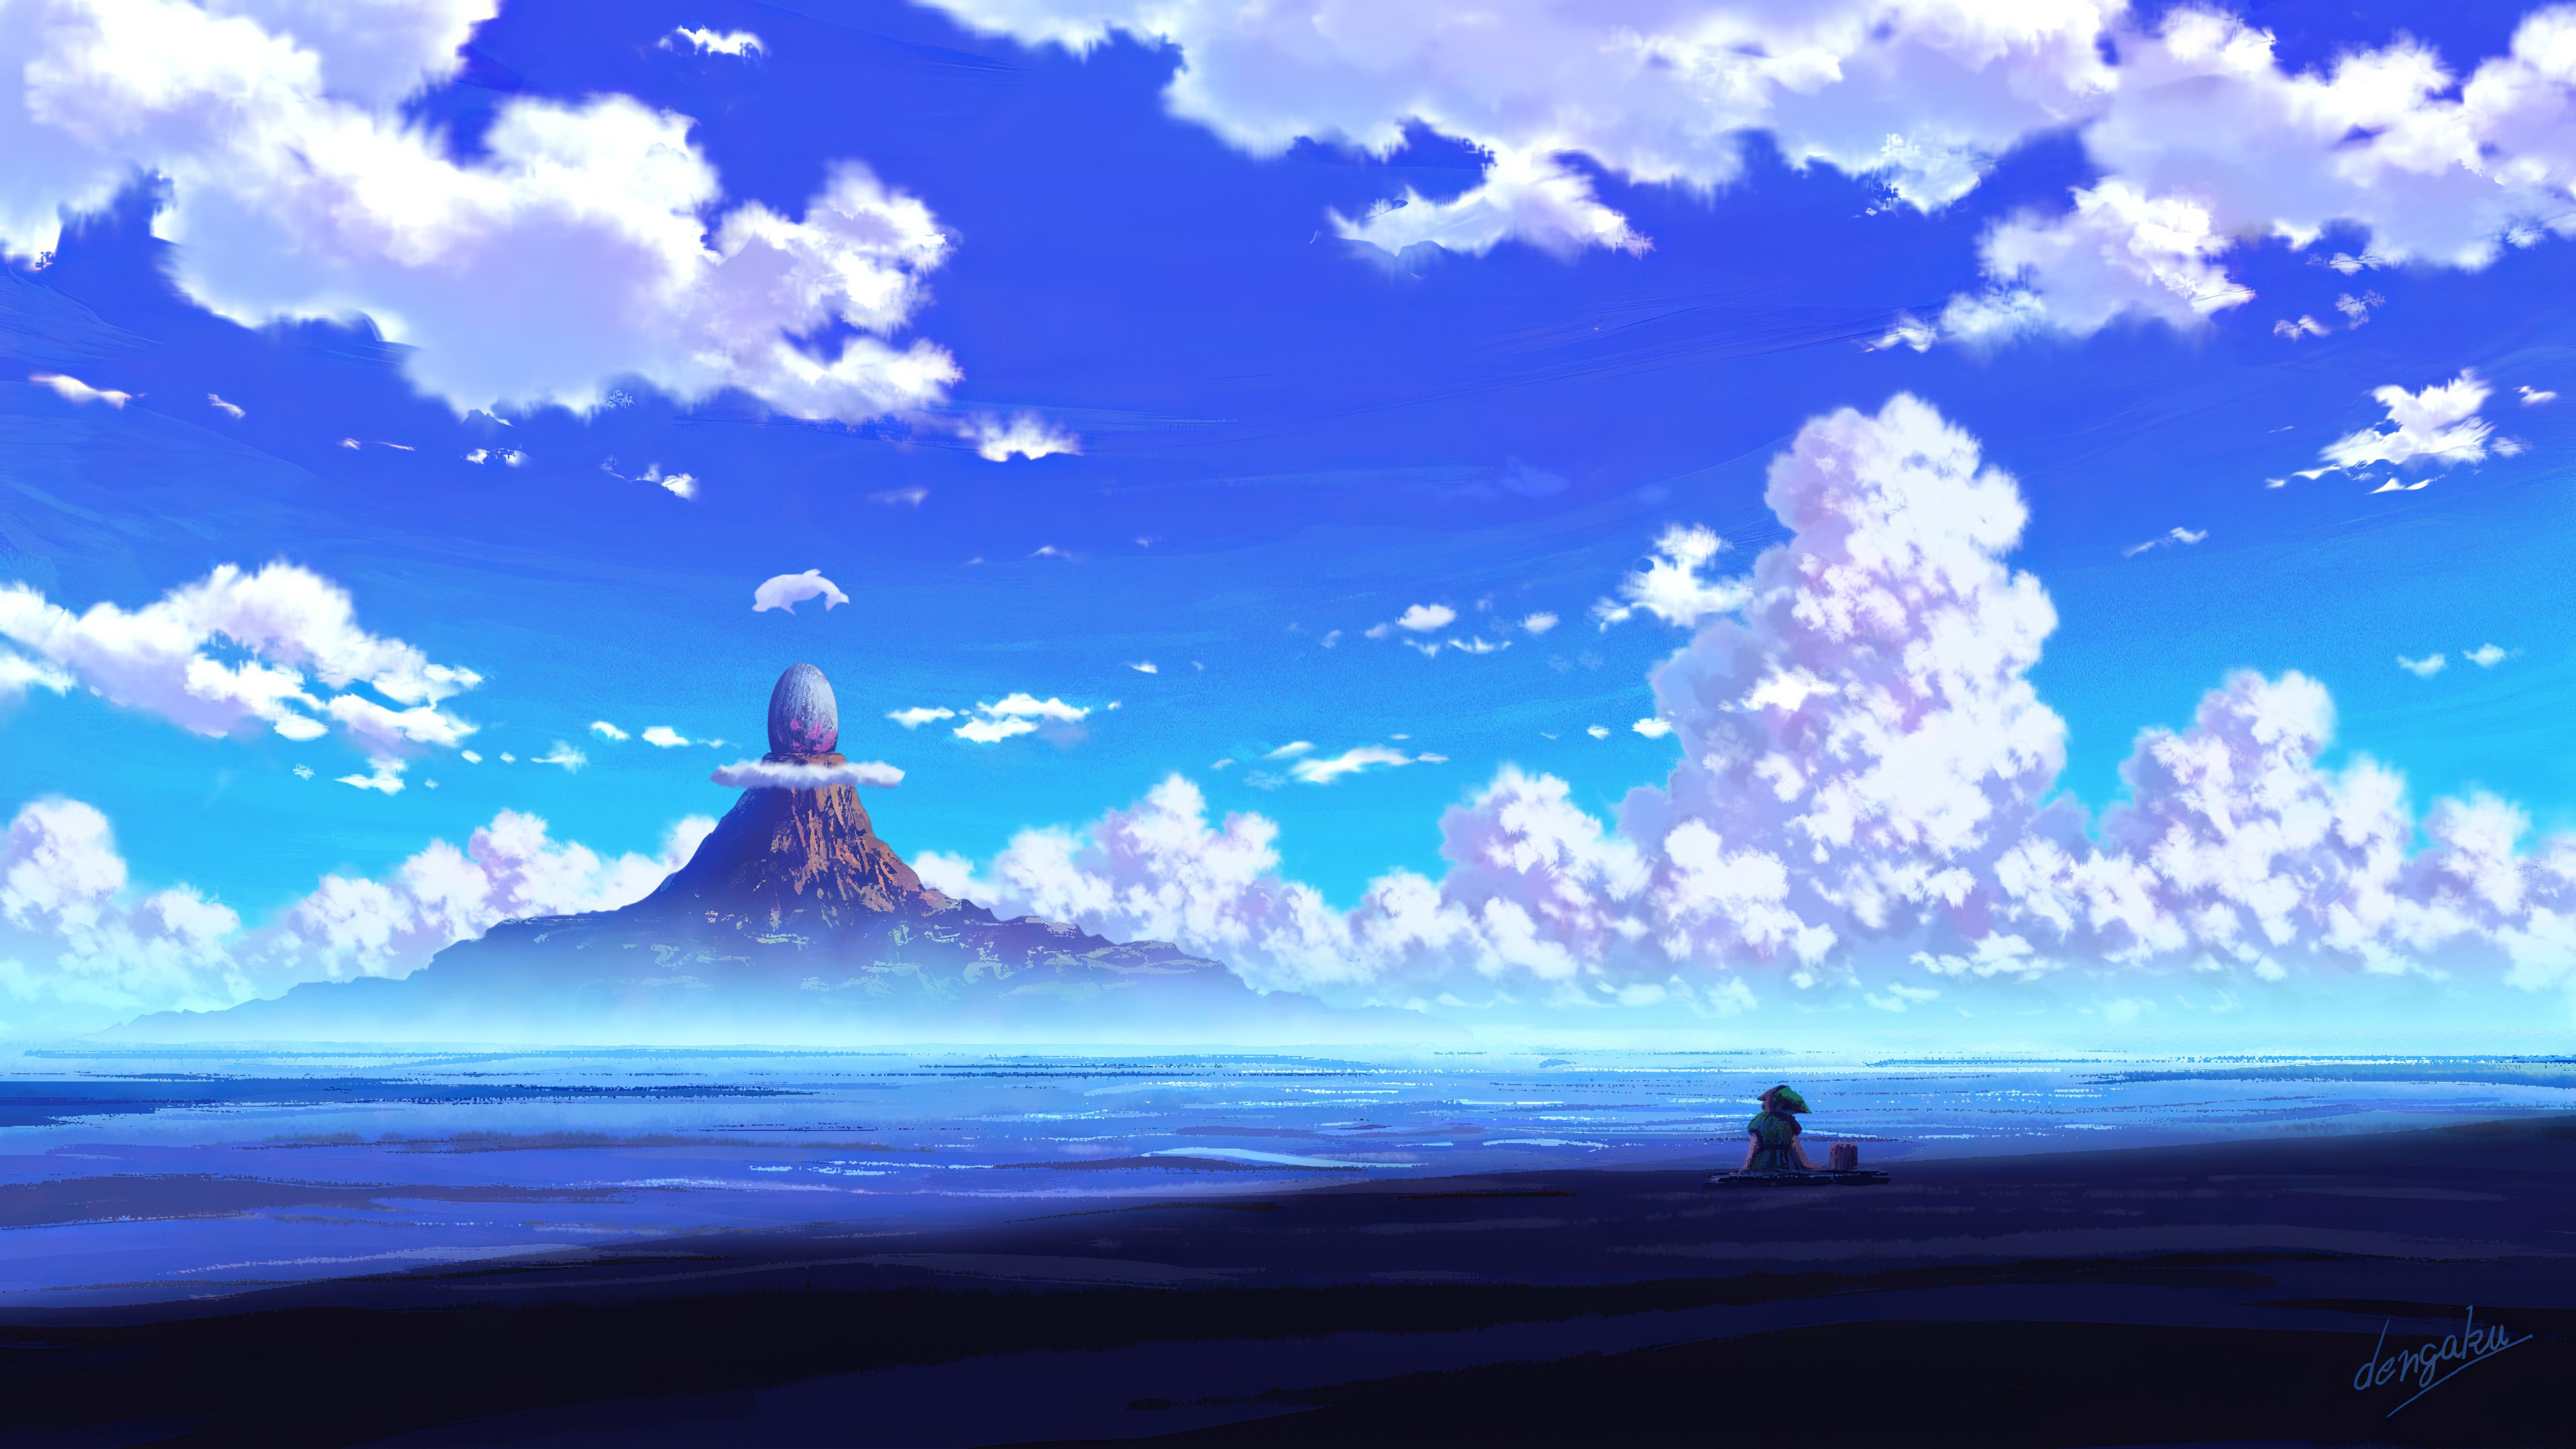 Sky Anime Landscape HD Wallpapers - Wallpaper Cave